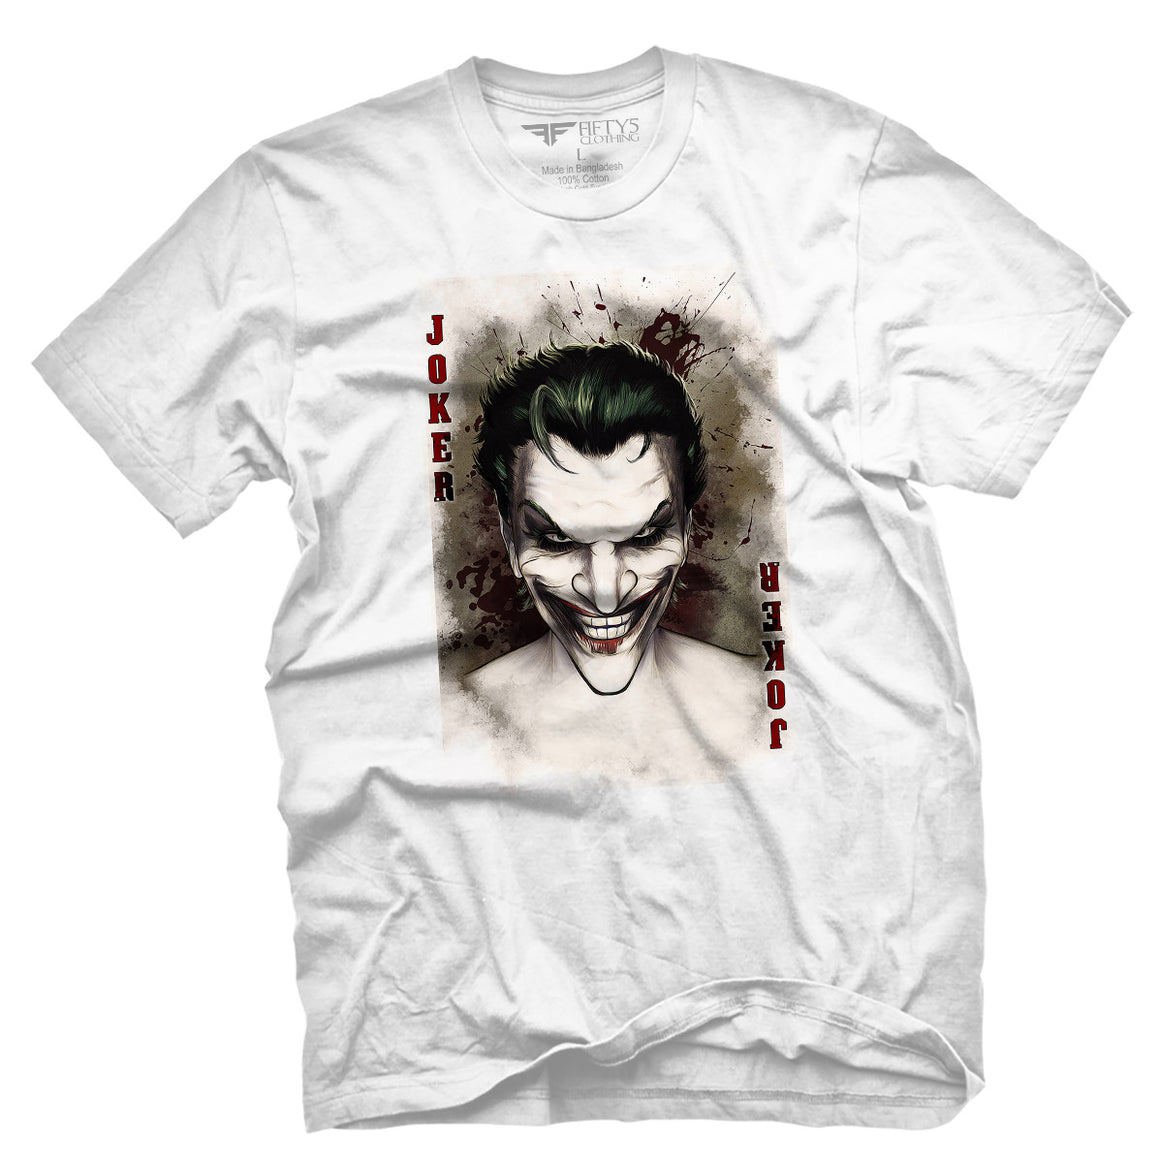 Joker Men's T Shirt